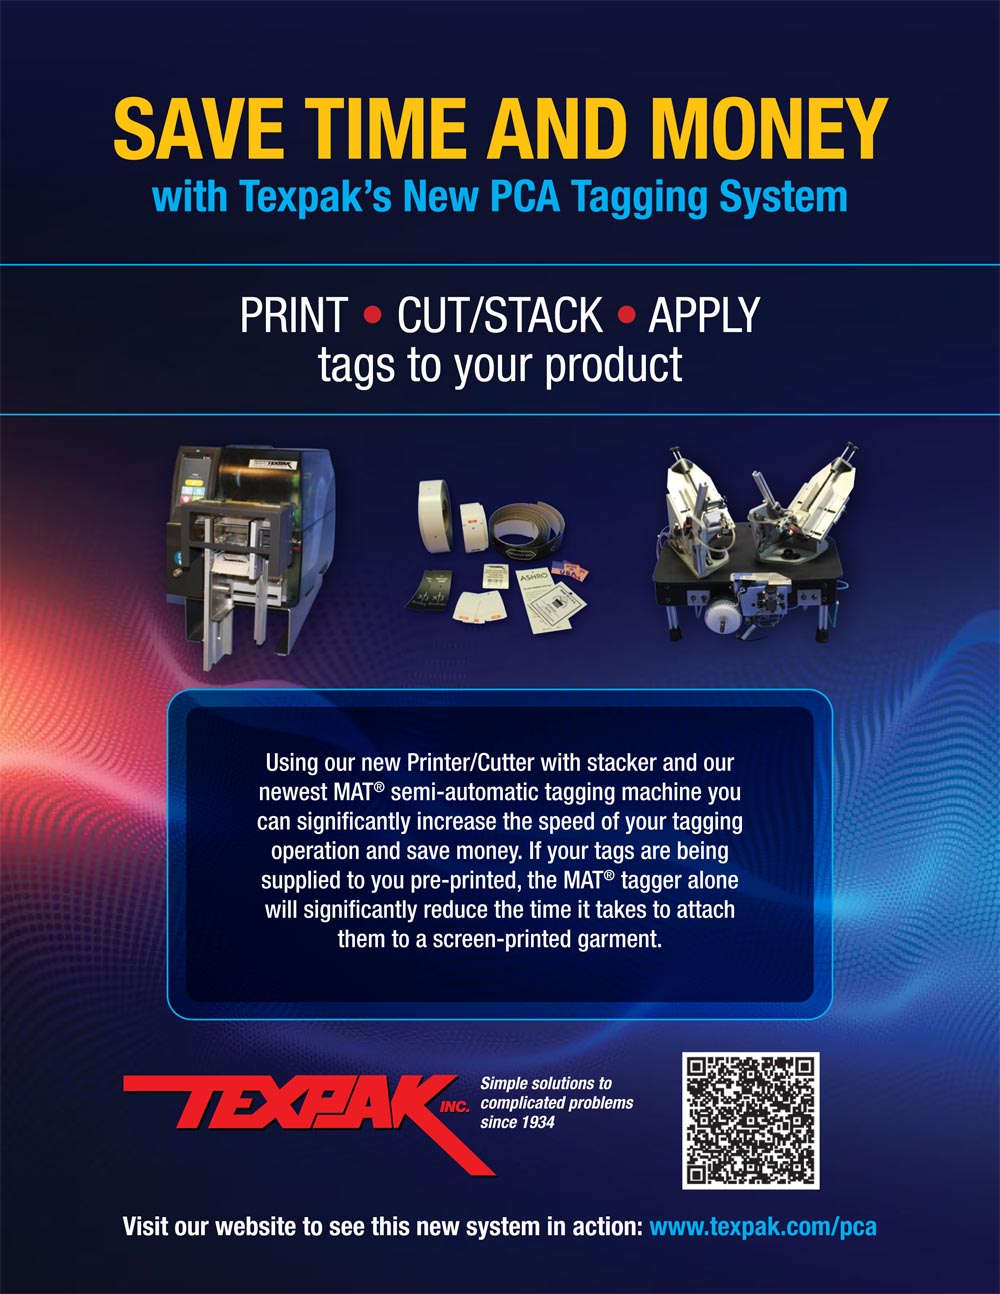 PCA Tagging System from Texpak